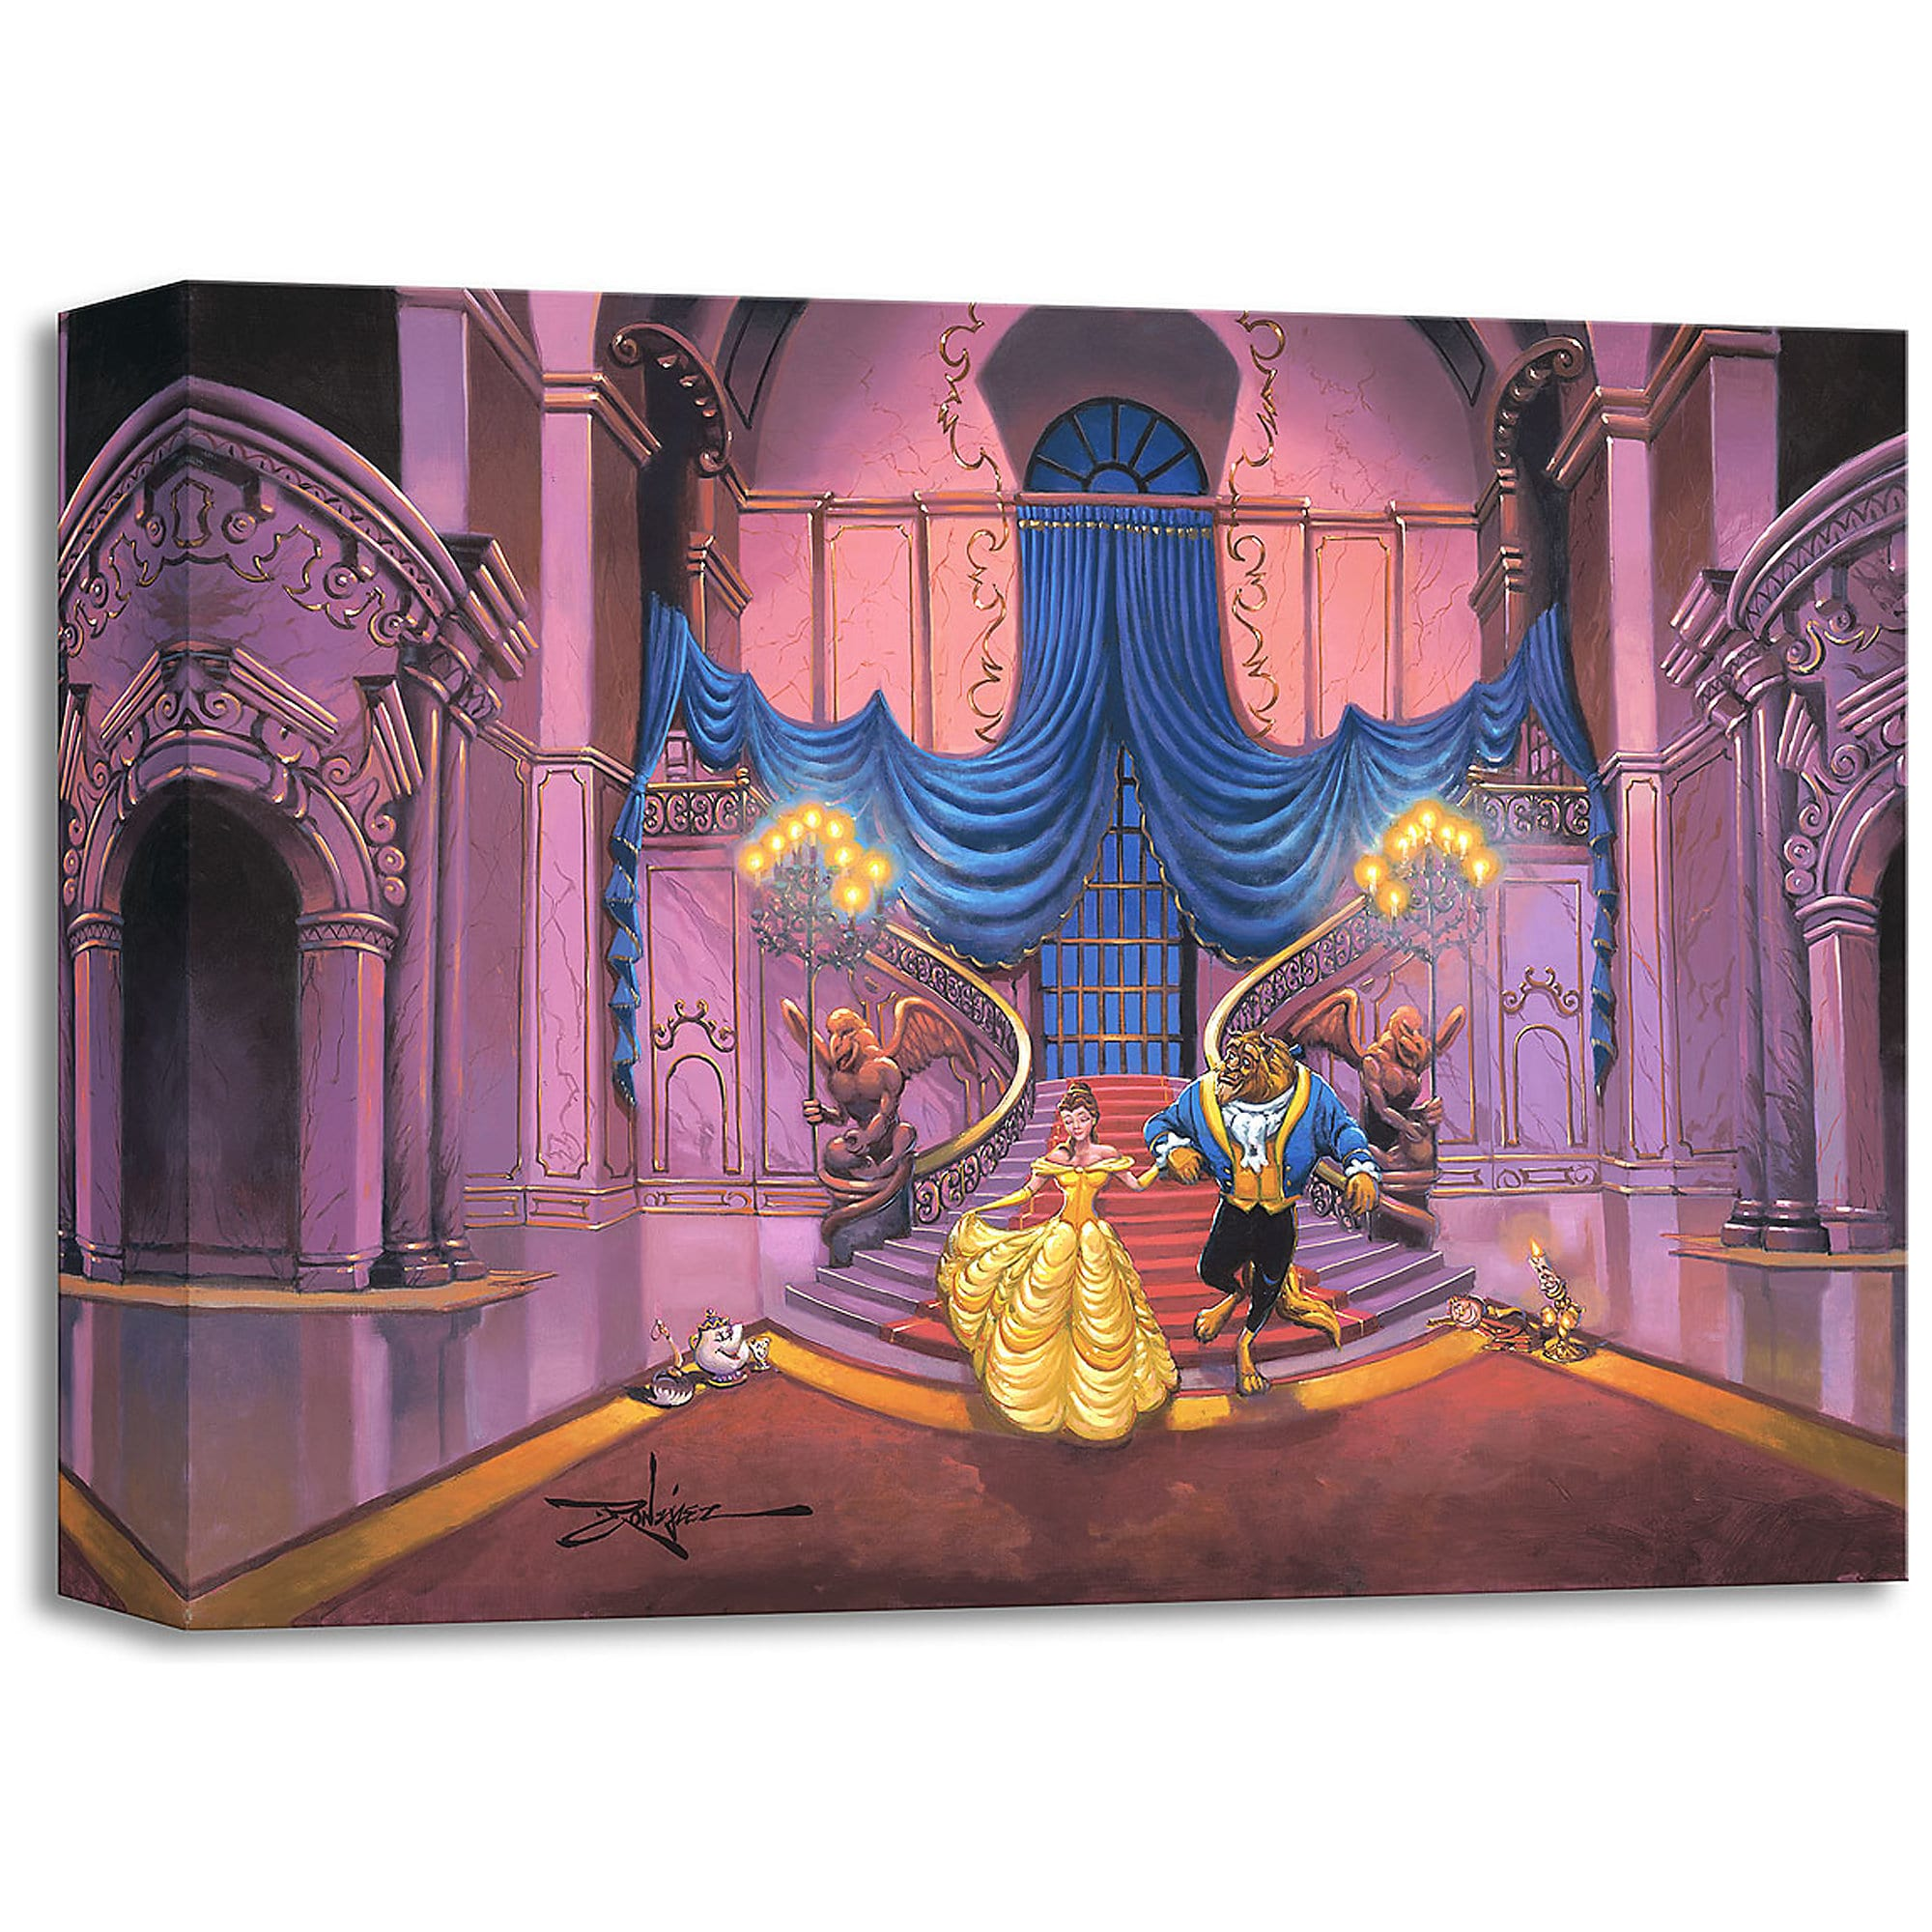 Beauty and the Beast ''Tale as Old as Time'' Giclée by Rodel Gonzalez